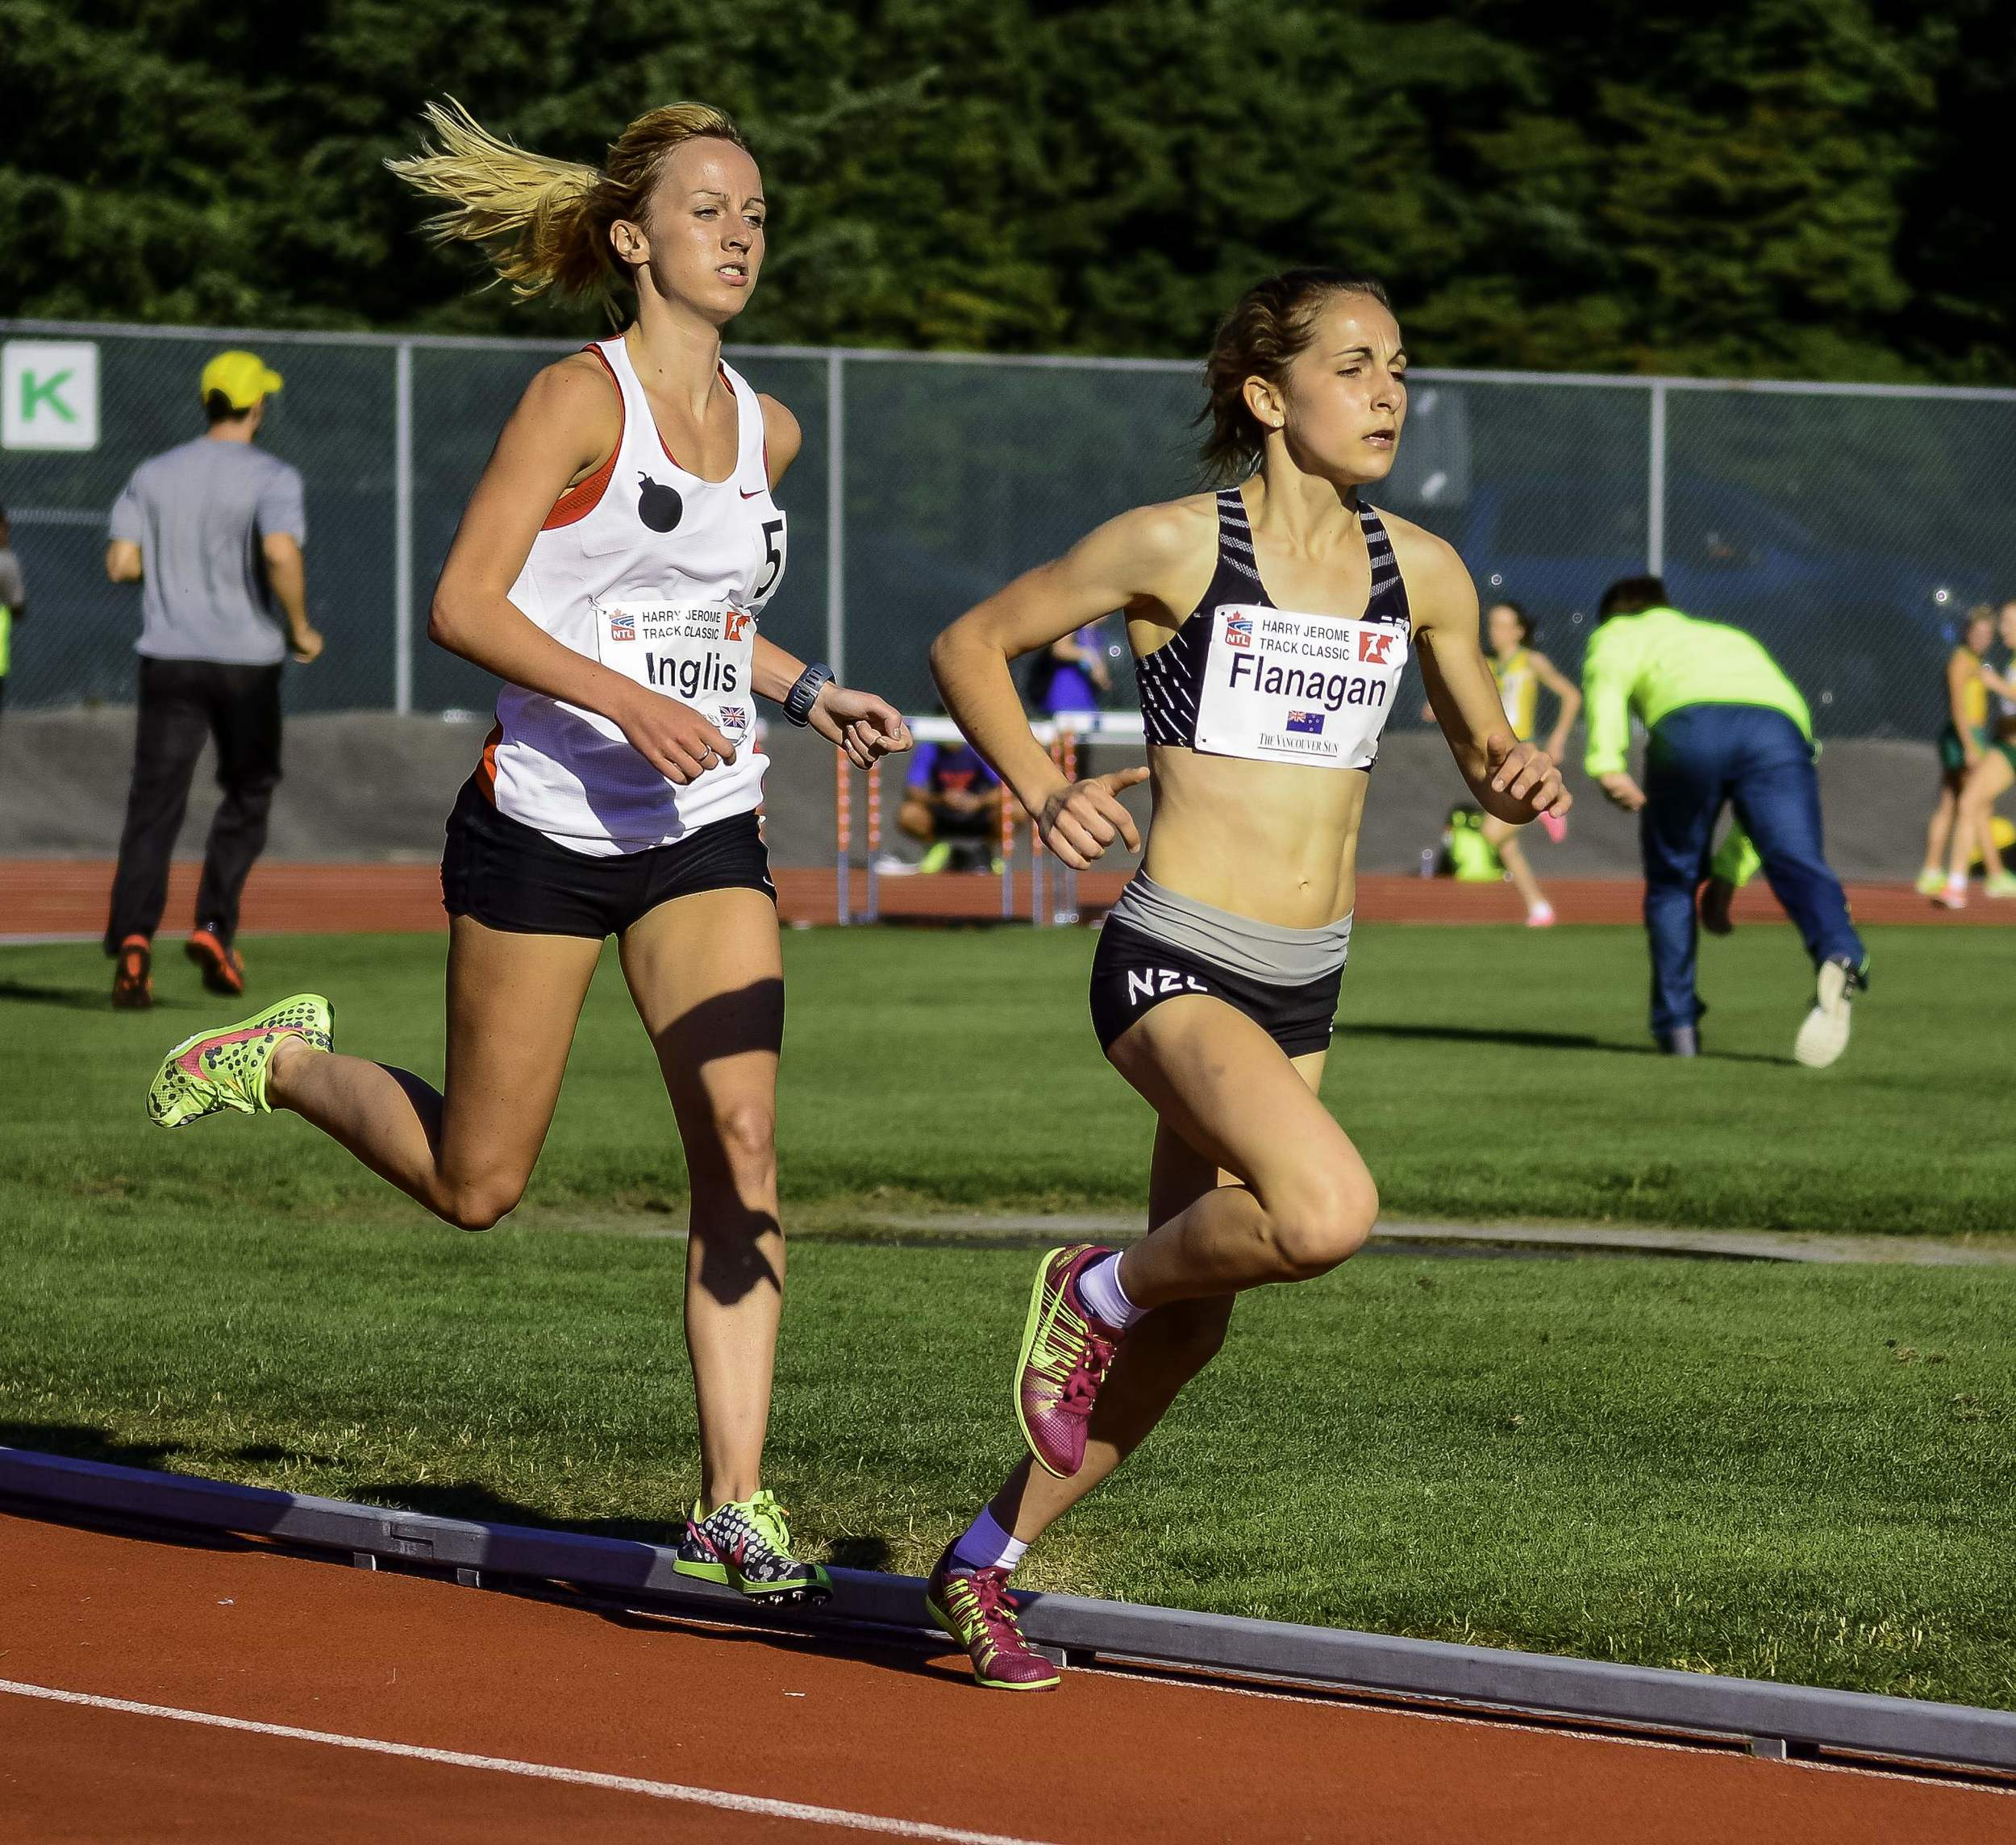 Rosa Flanagan of New Zealand leads world junior list in the mile  photo by Brian Cliff